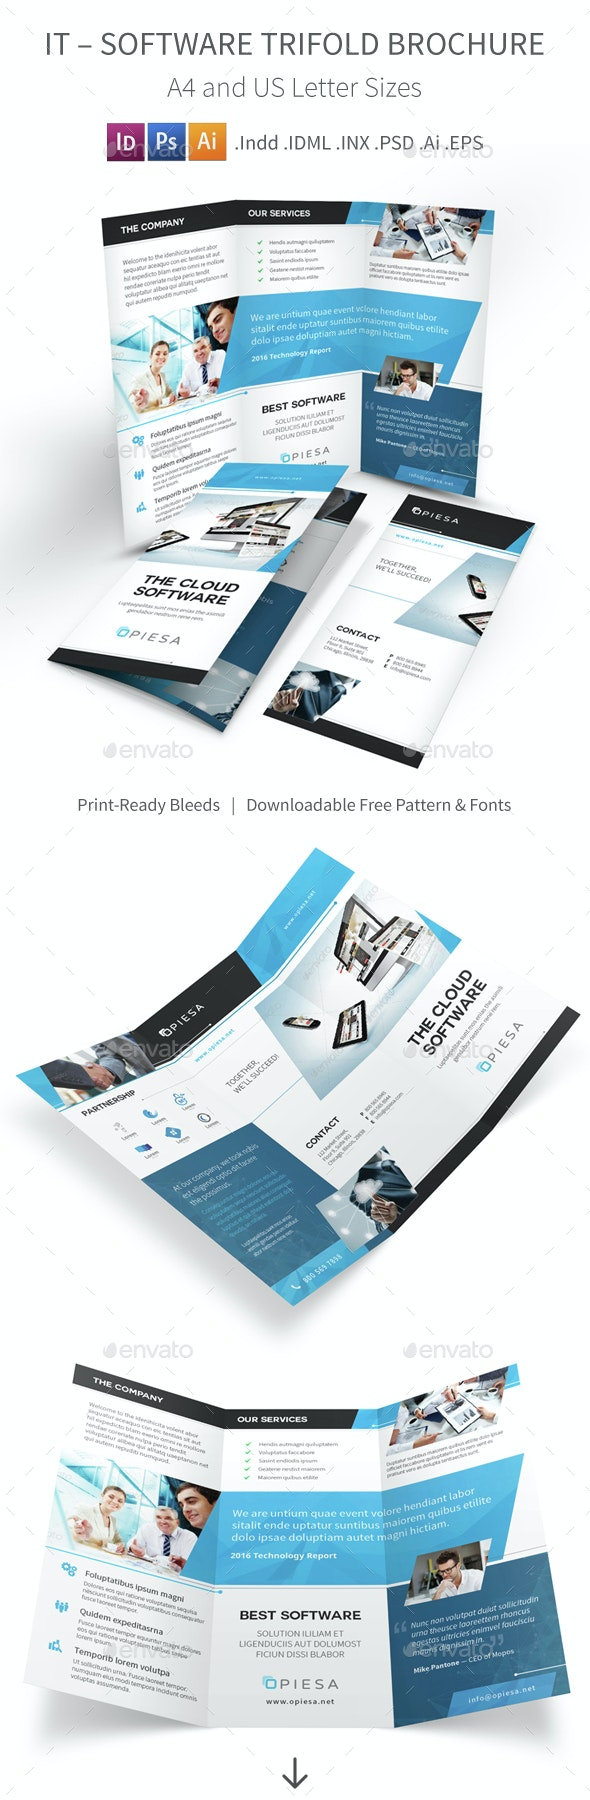 IT – Software Trifold Brochure 5 - Corporate Brochures